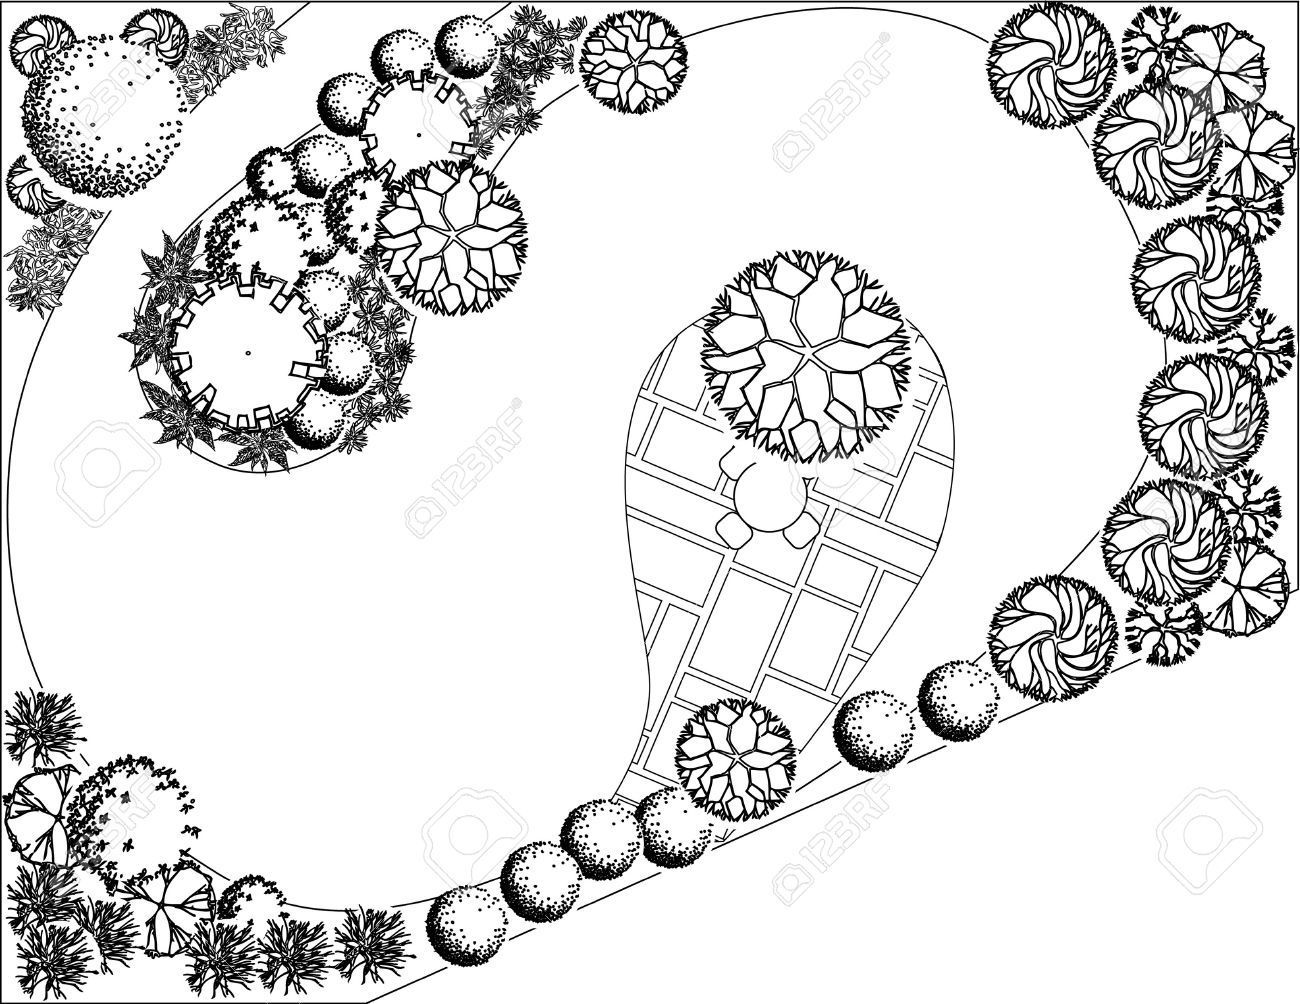 Plan of garden with symbols of tree royalty free cliparts vectors plan of garden with symbols of tree royalty free cliparts vectors and stock illustration biocorpaavc Images